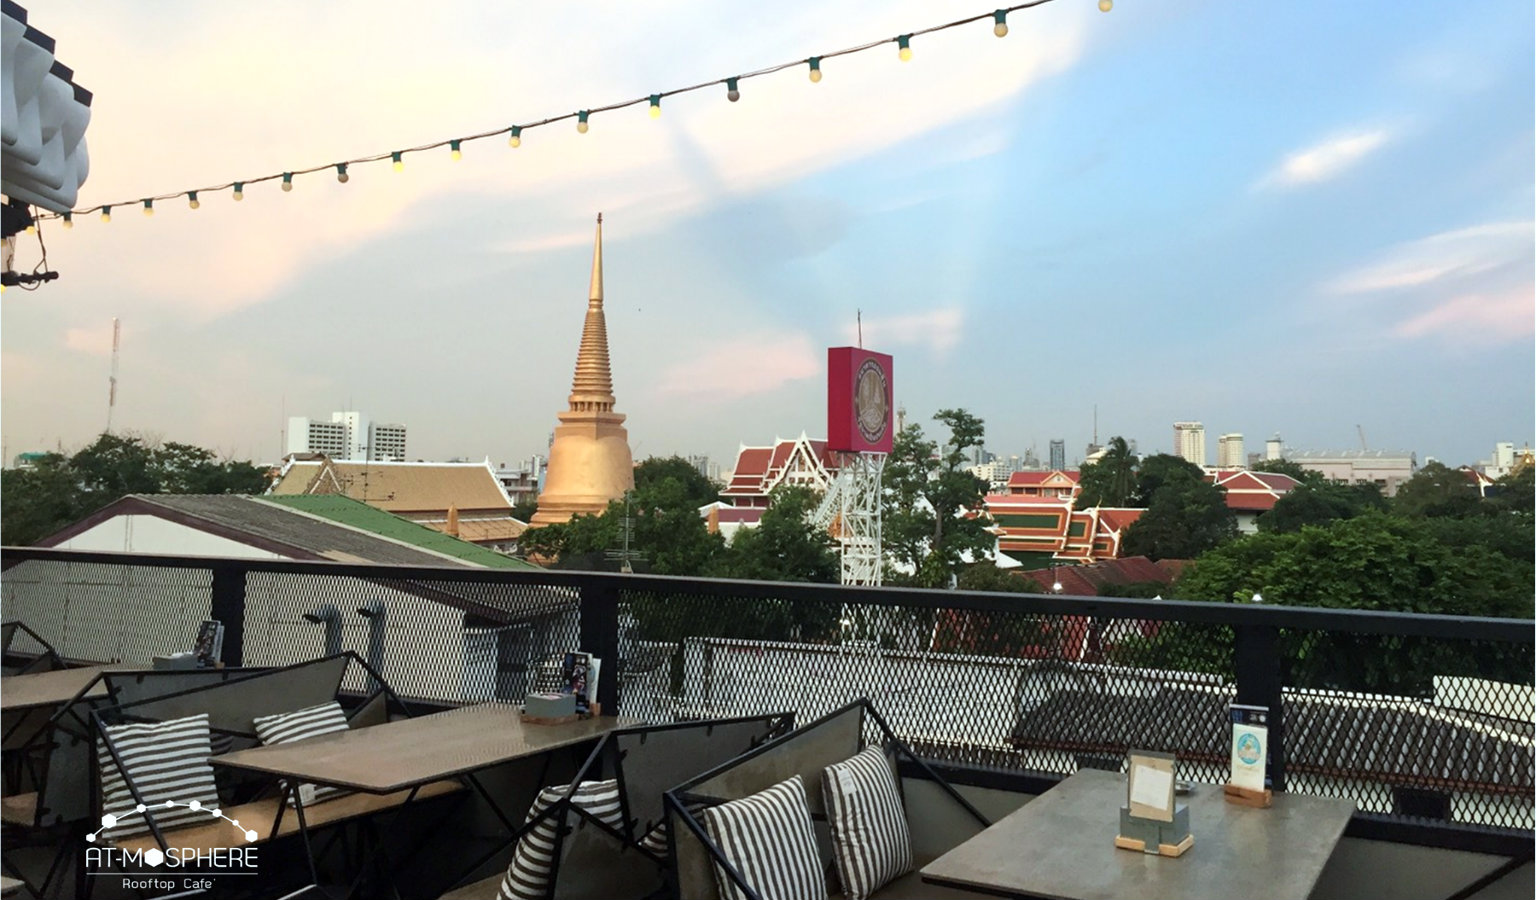 View of the Wat Bowonniwet from At-Mosphere Rooftop Cafe in Bangkok, Thailand